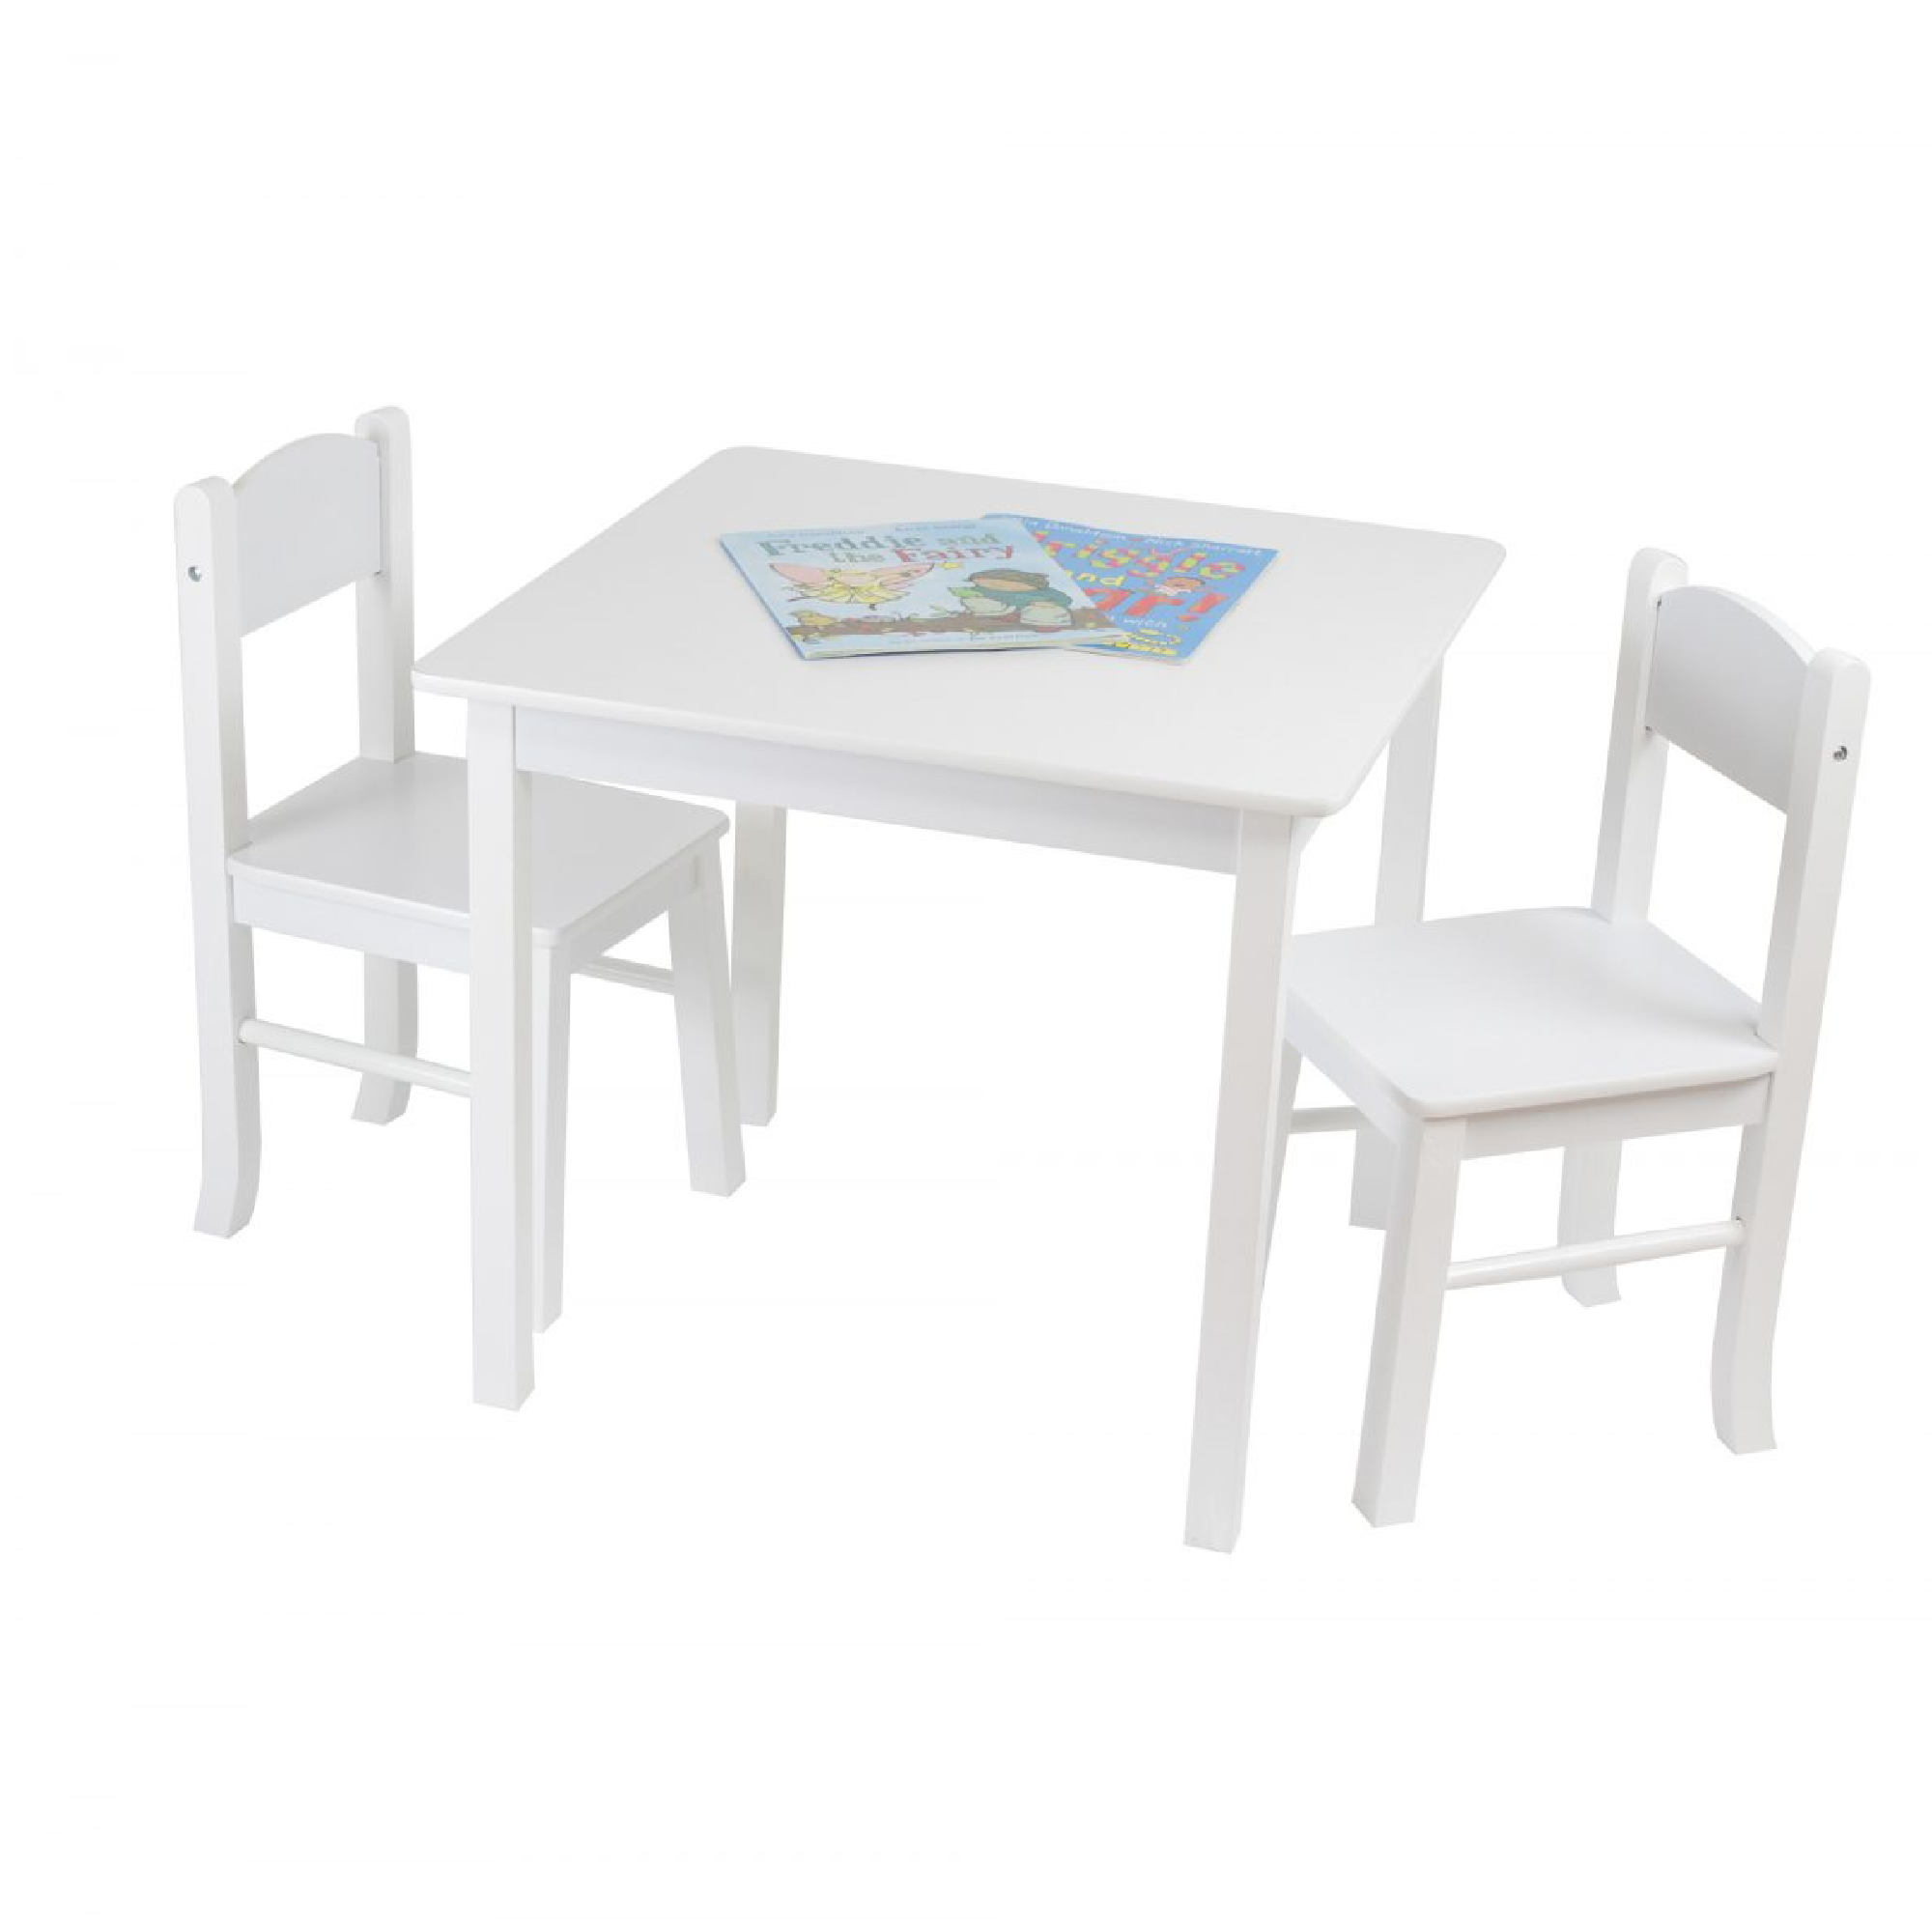 Surprising Liberty House Toys White Wooden Table 2 Chair Set Pabps2019 Chair Design Images Pabps2019Com